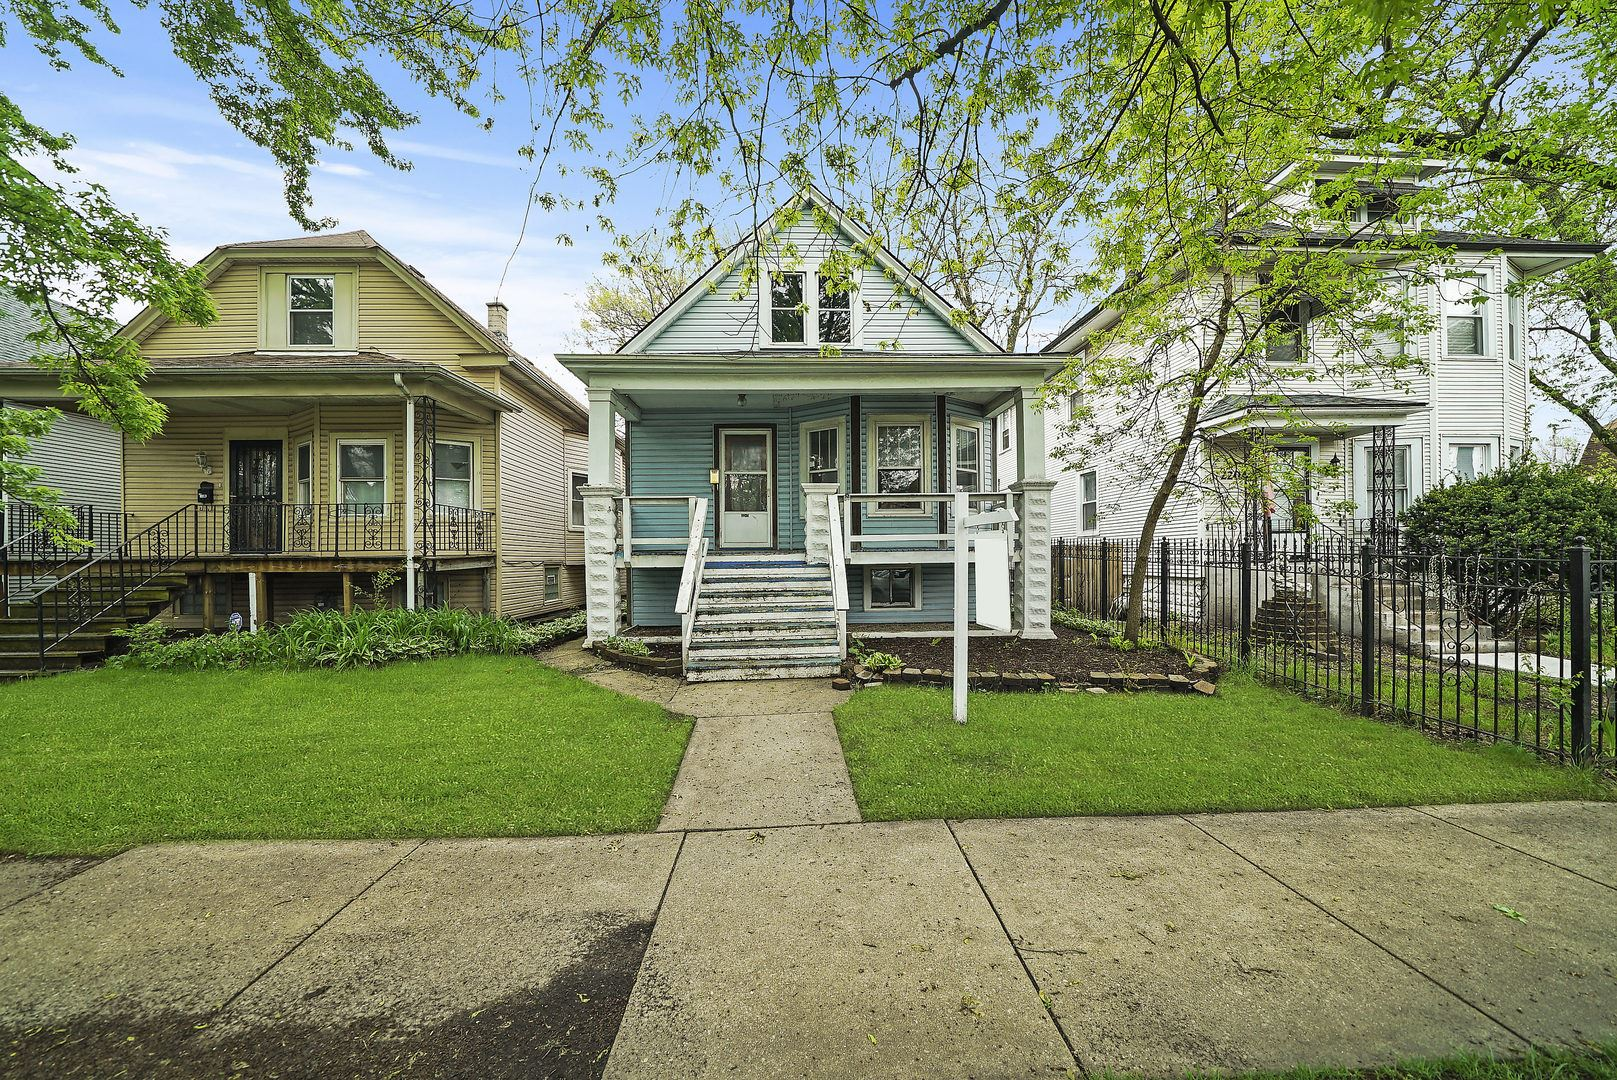 2205 N Leclaire Avenue, Chicago, IL 60639 - #: 10651046